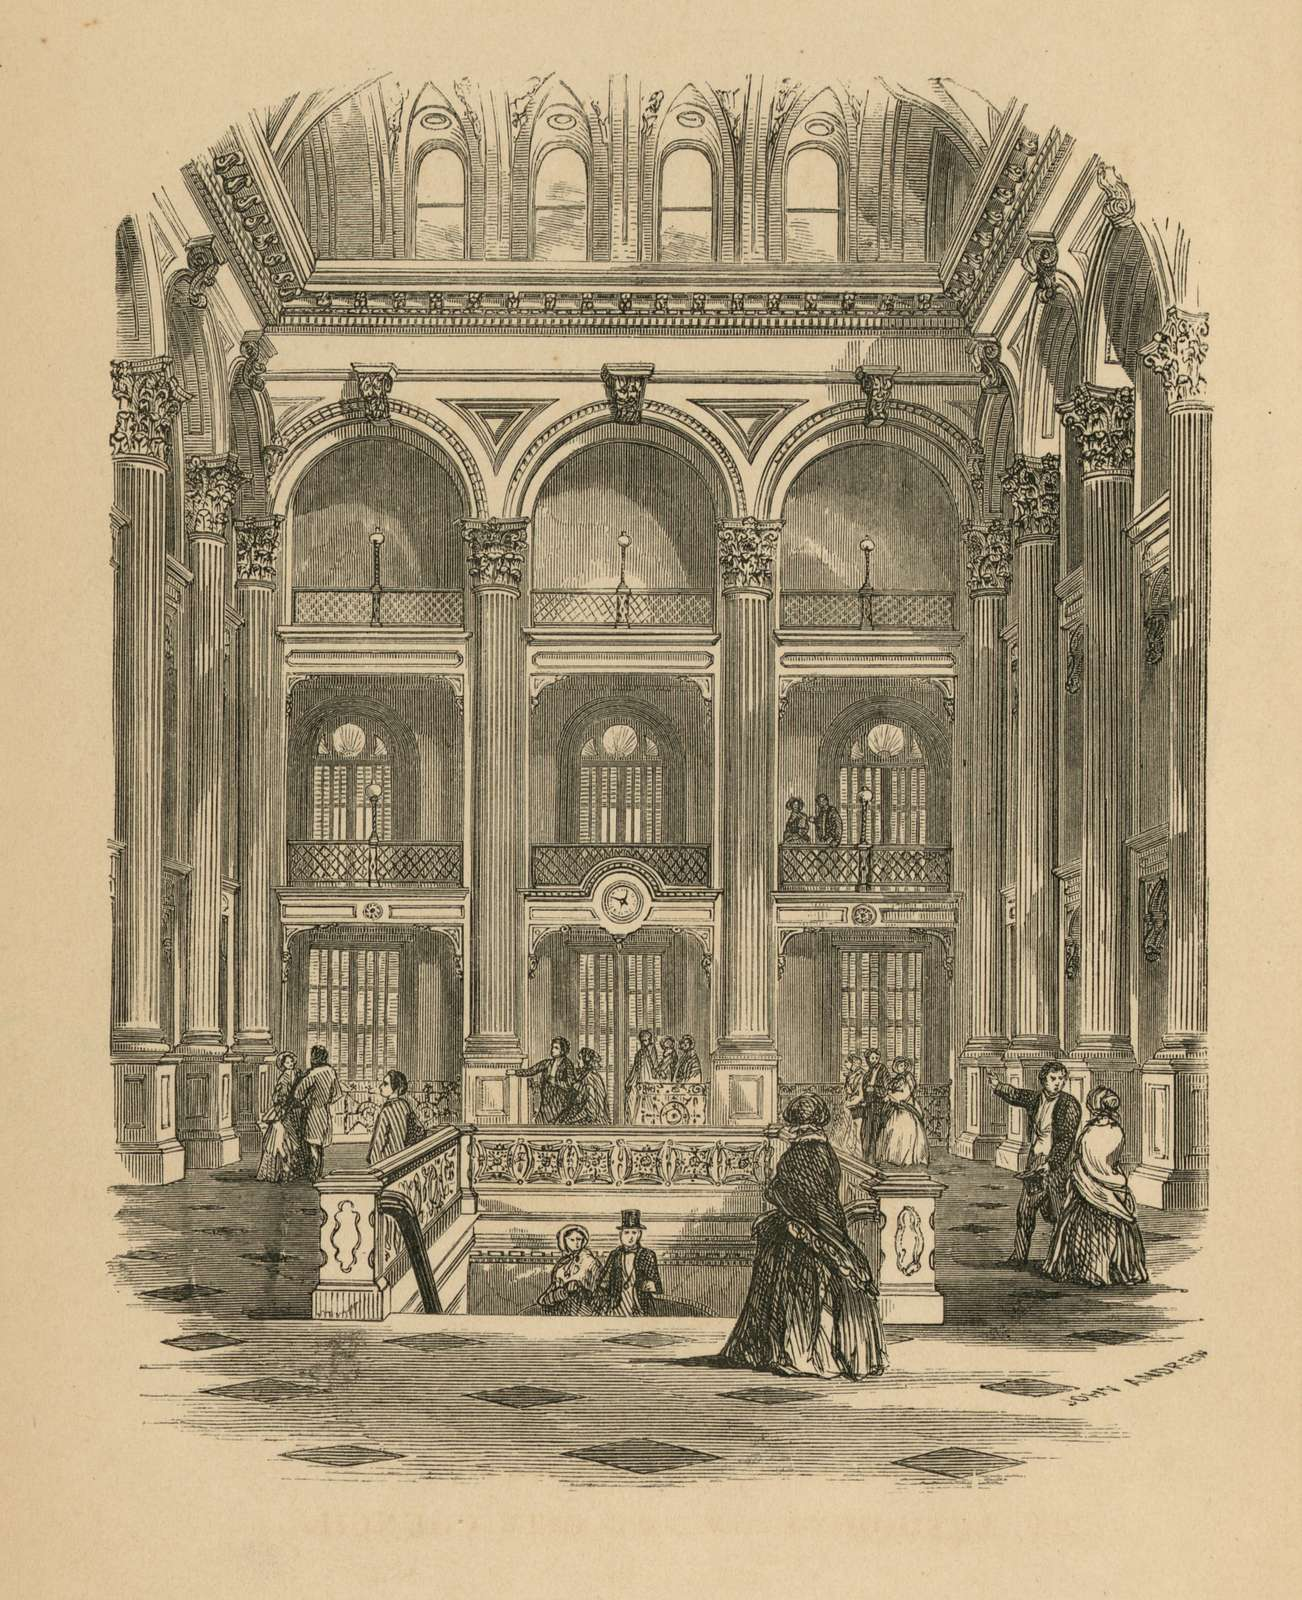 [Interior view of the main floor of the Boston Public Library] / John Andrew.